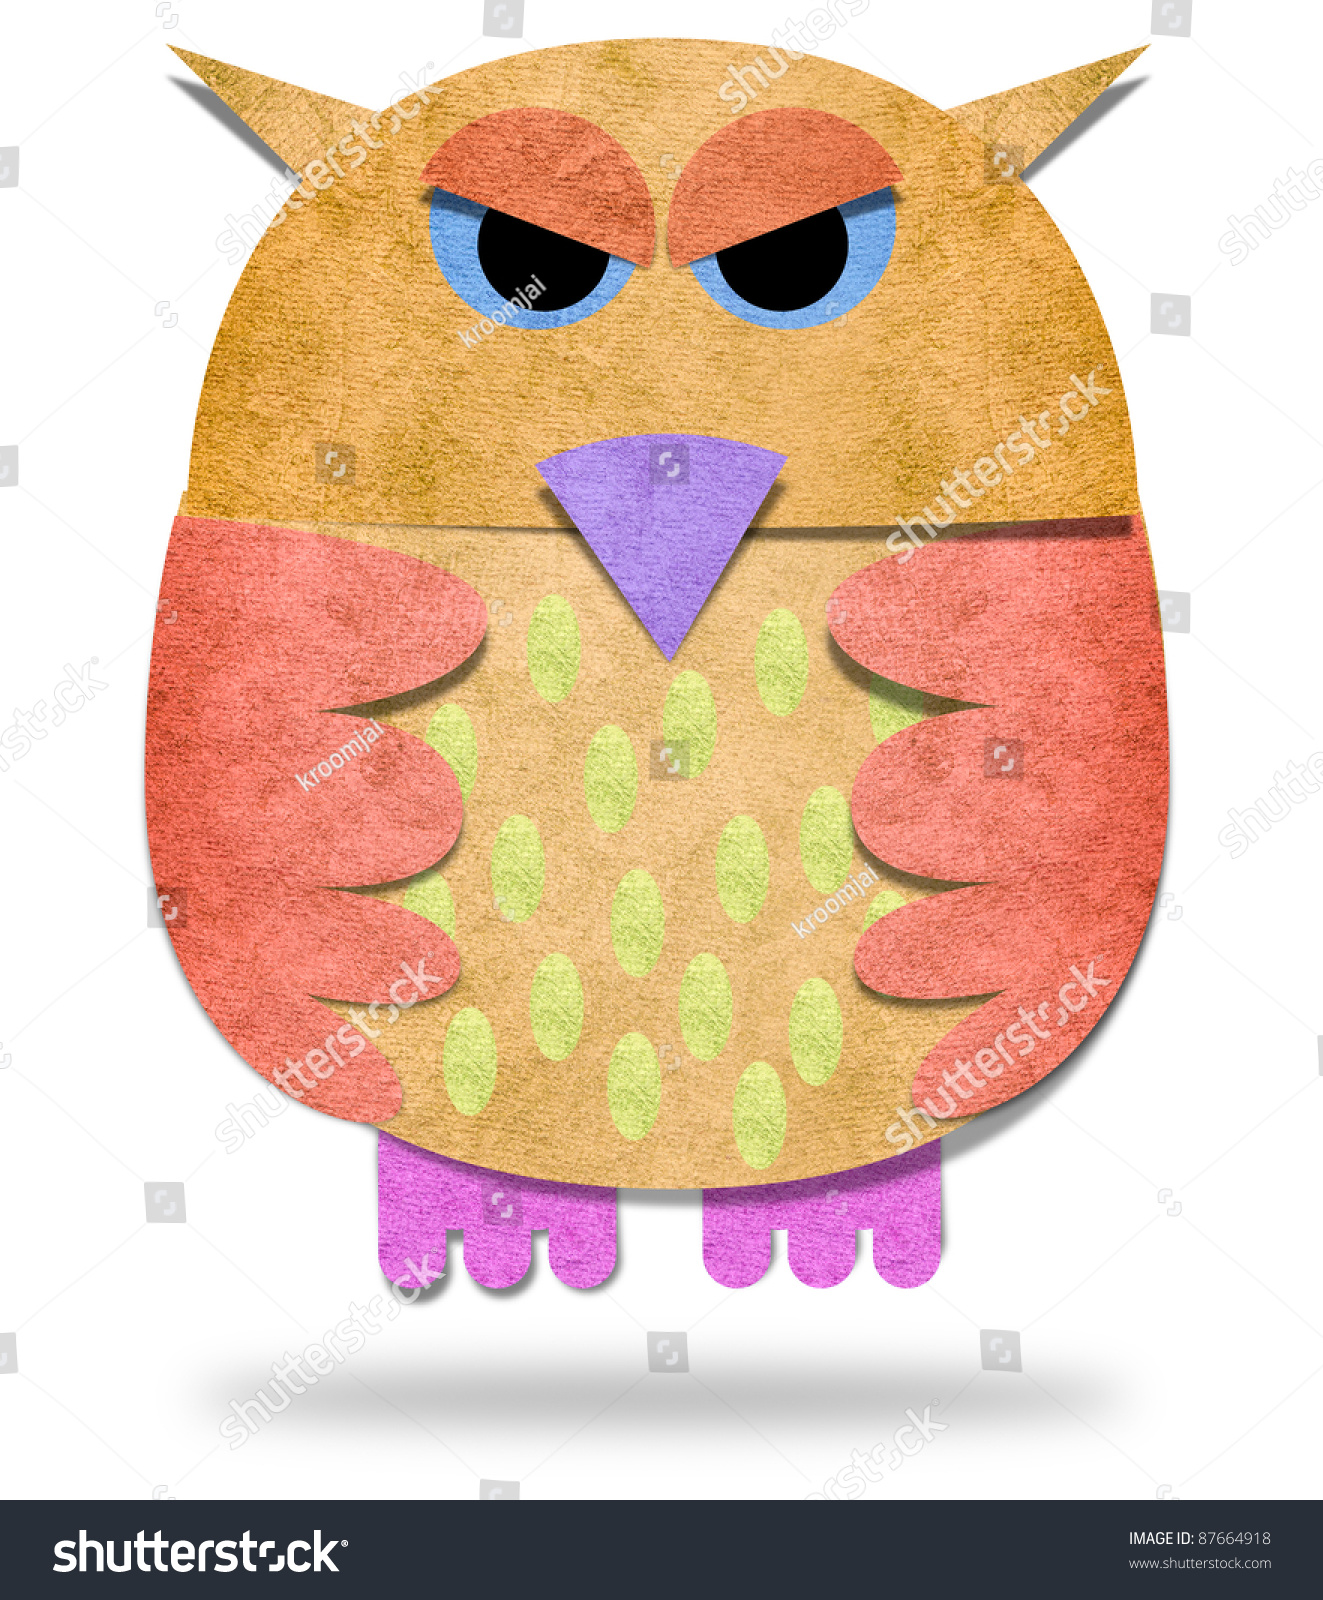 Owls paper craft on white background stock illustration 87664918 owls paper craft on white background jeuxipadfo Choice Image